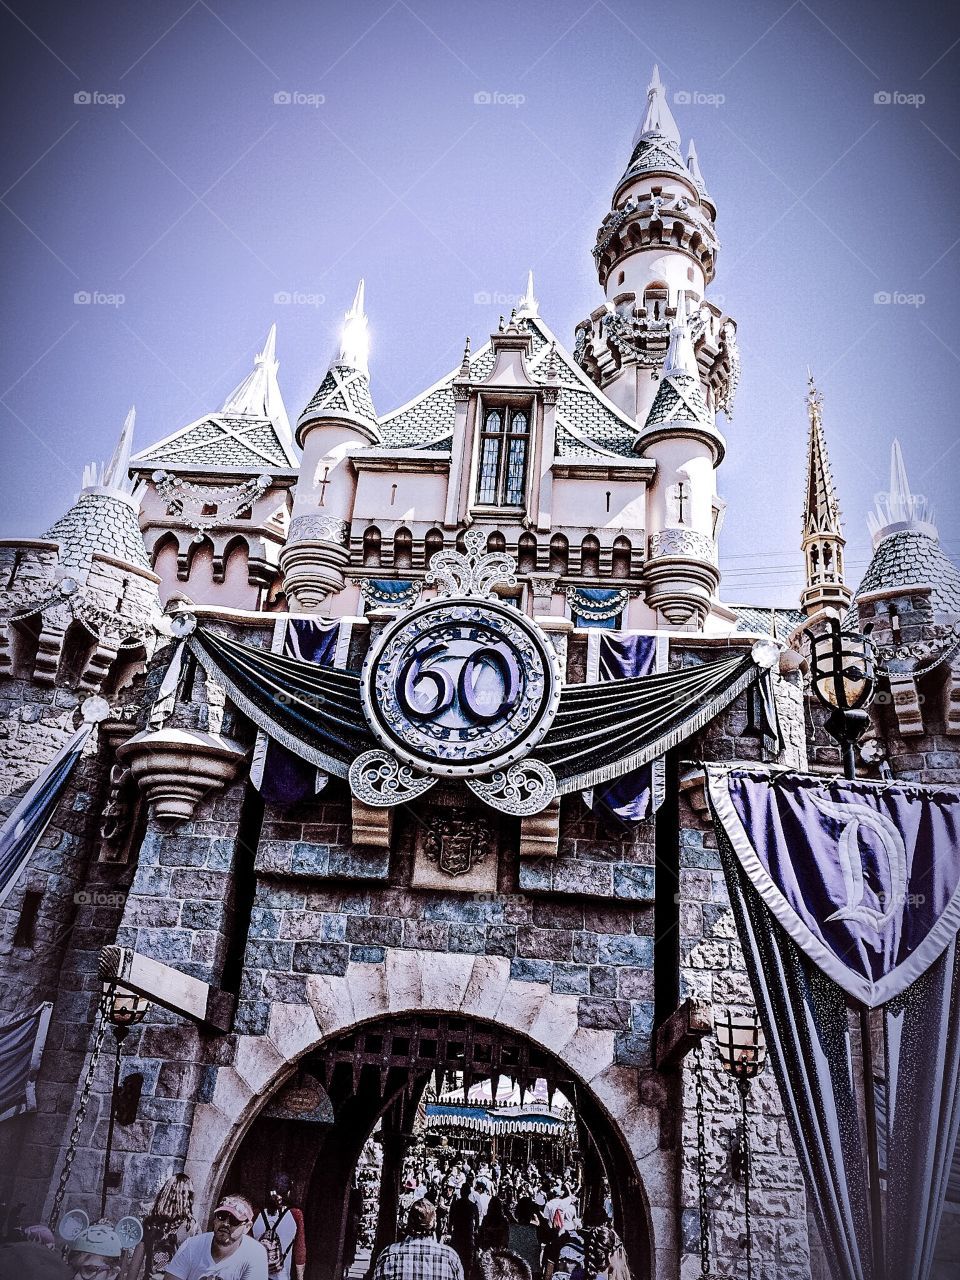 Disneyland's 60th Anniversary Celebration featuring their famous Sleeping Beauty Castle.